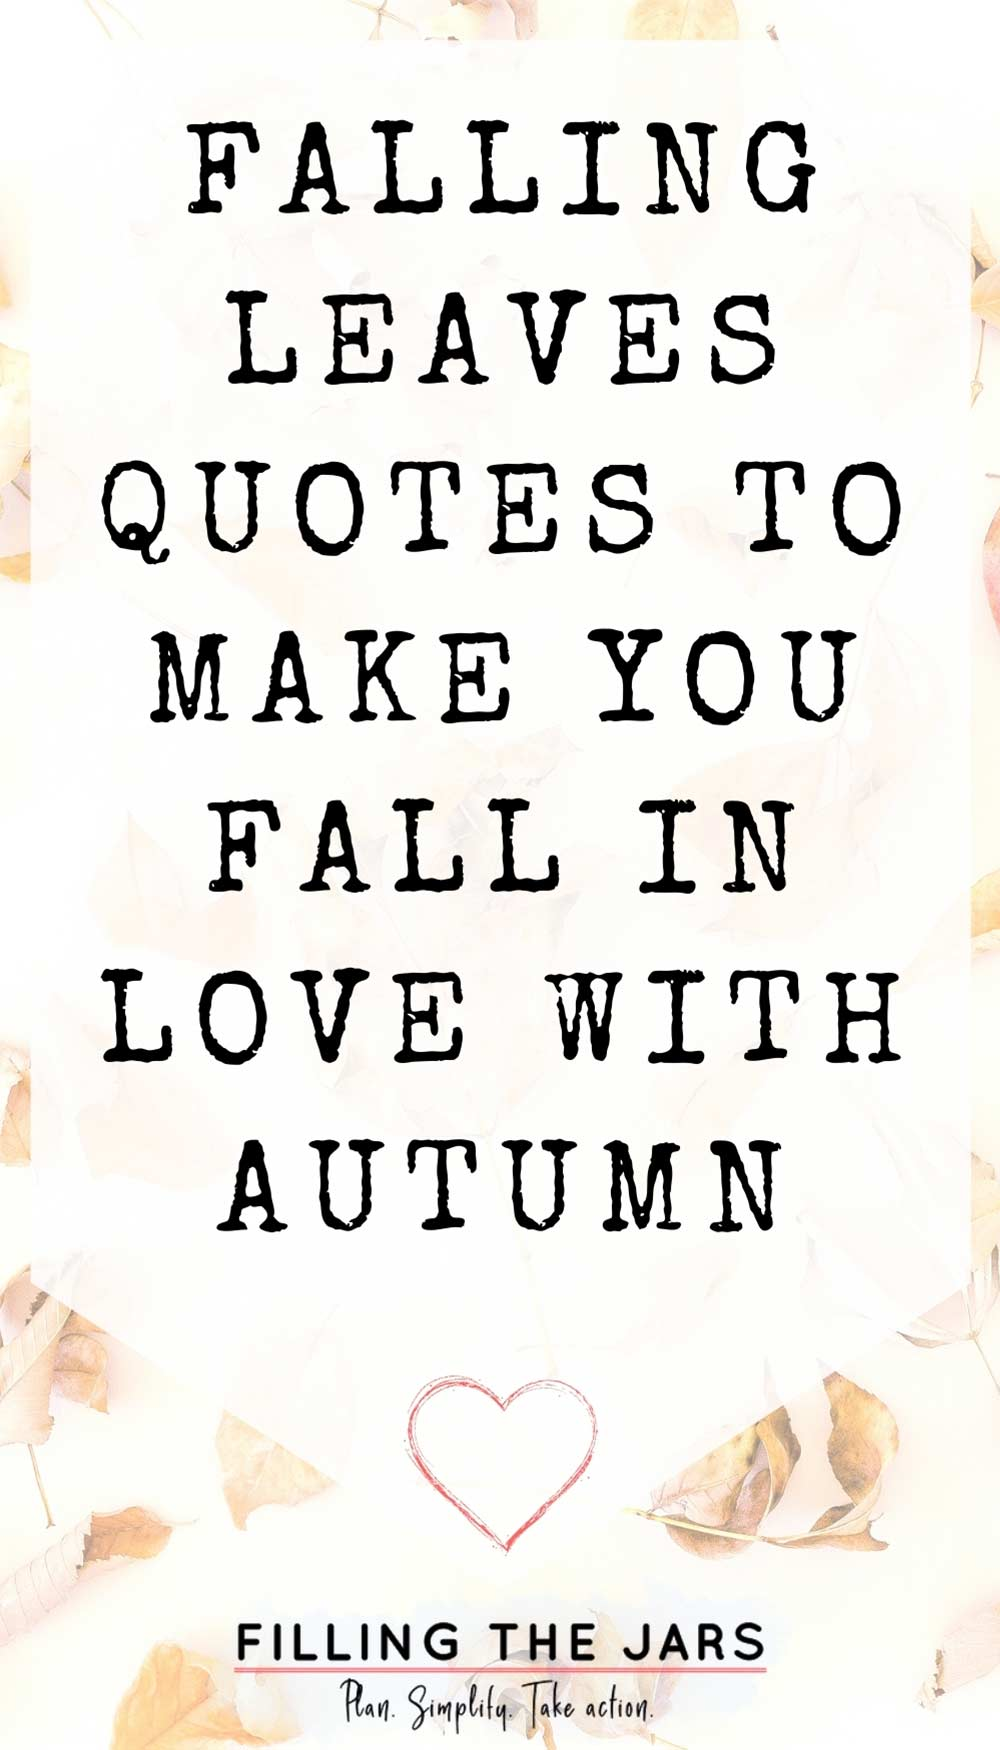 Text falling leaves quotes to make you fall in love with autumn on white background over faded background of scattered leaves.